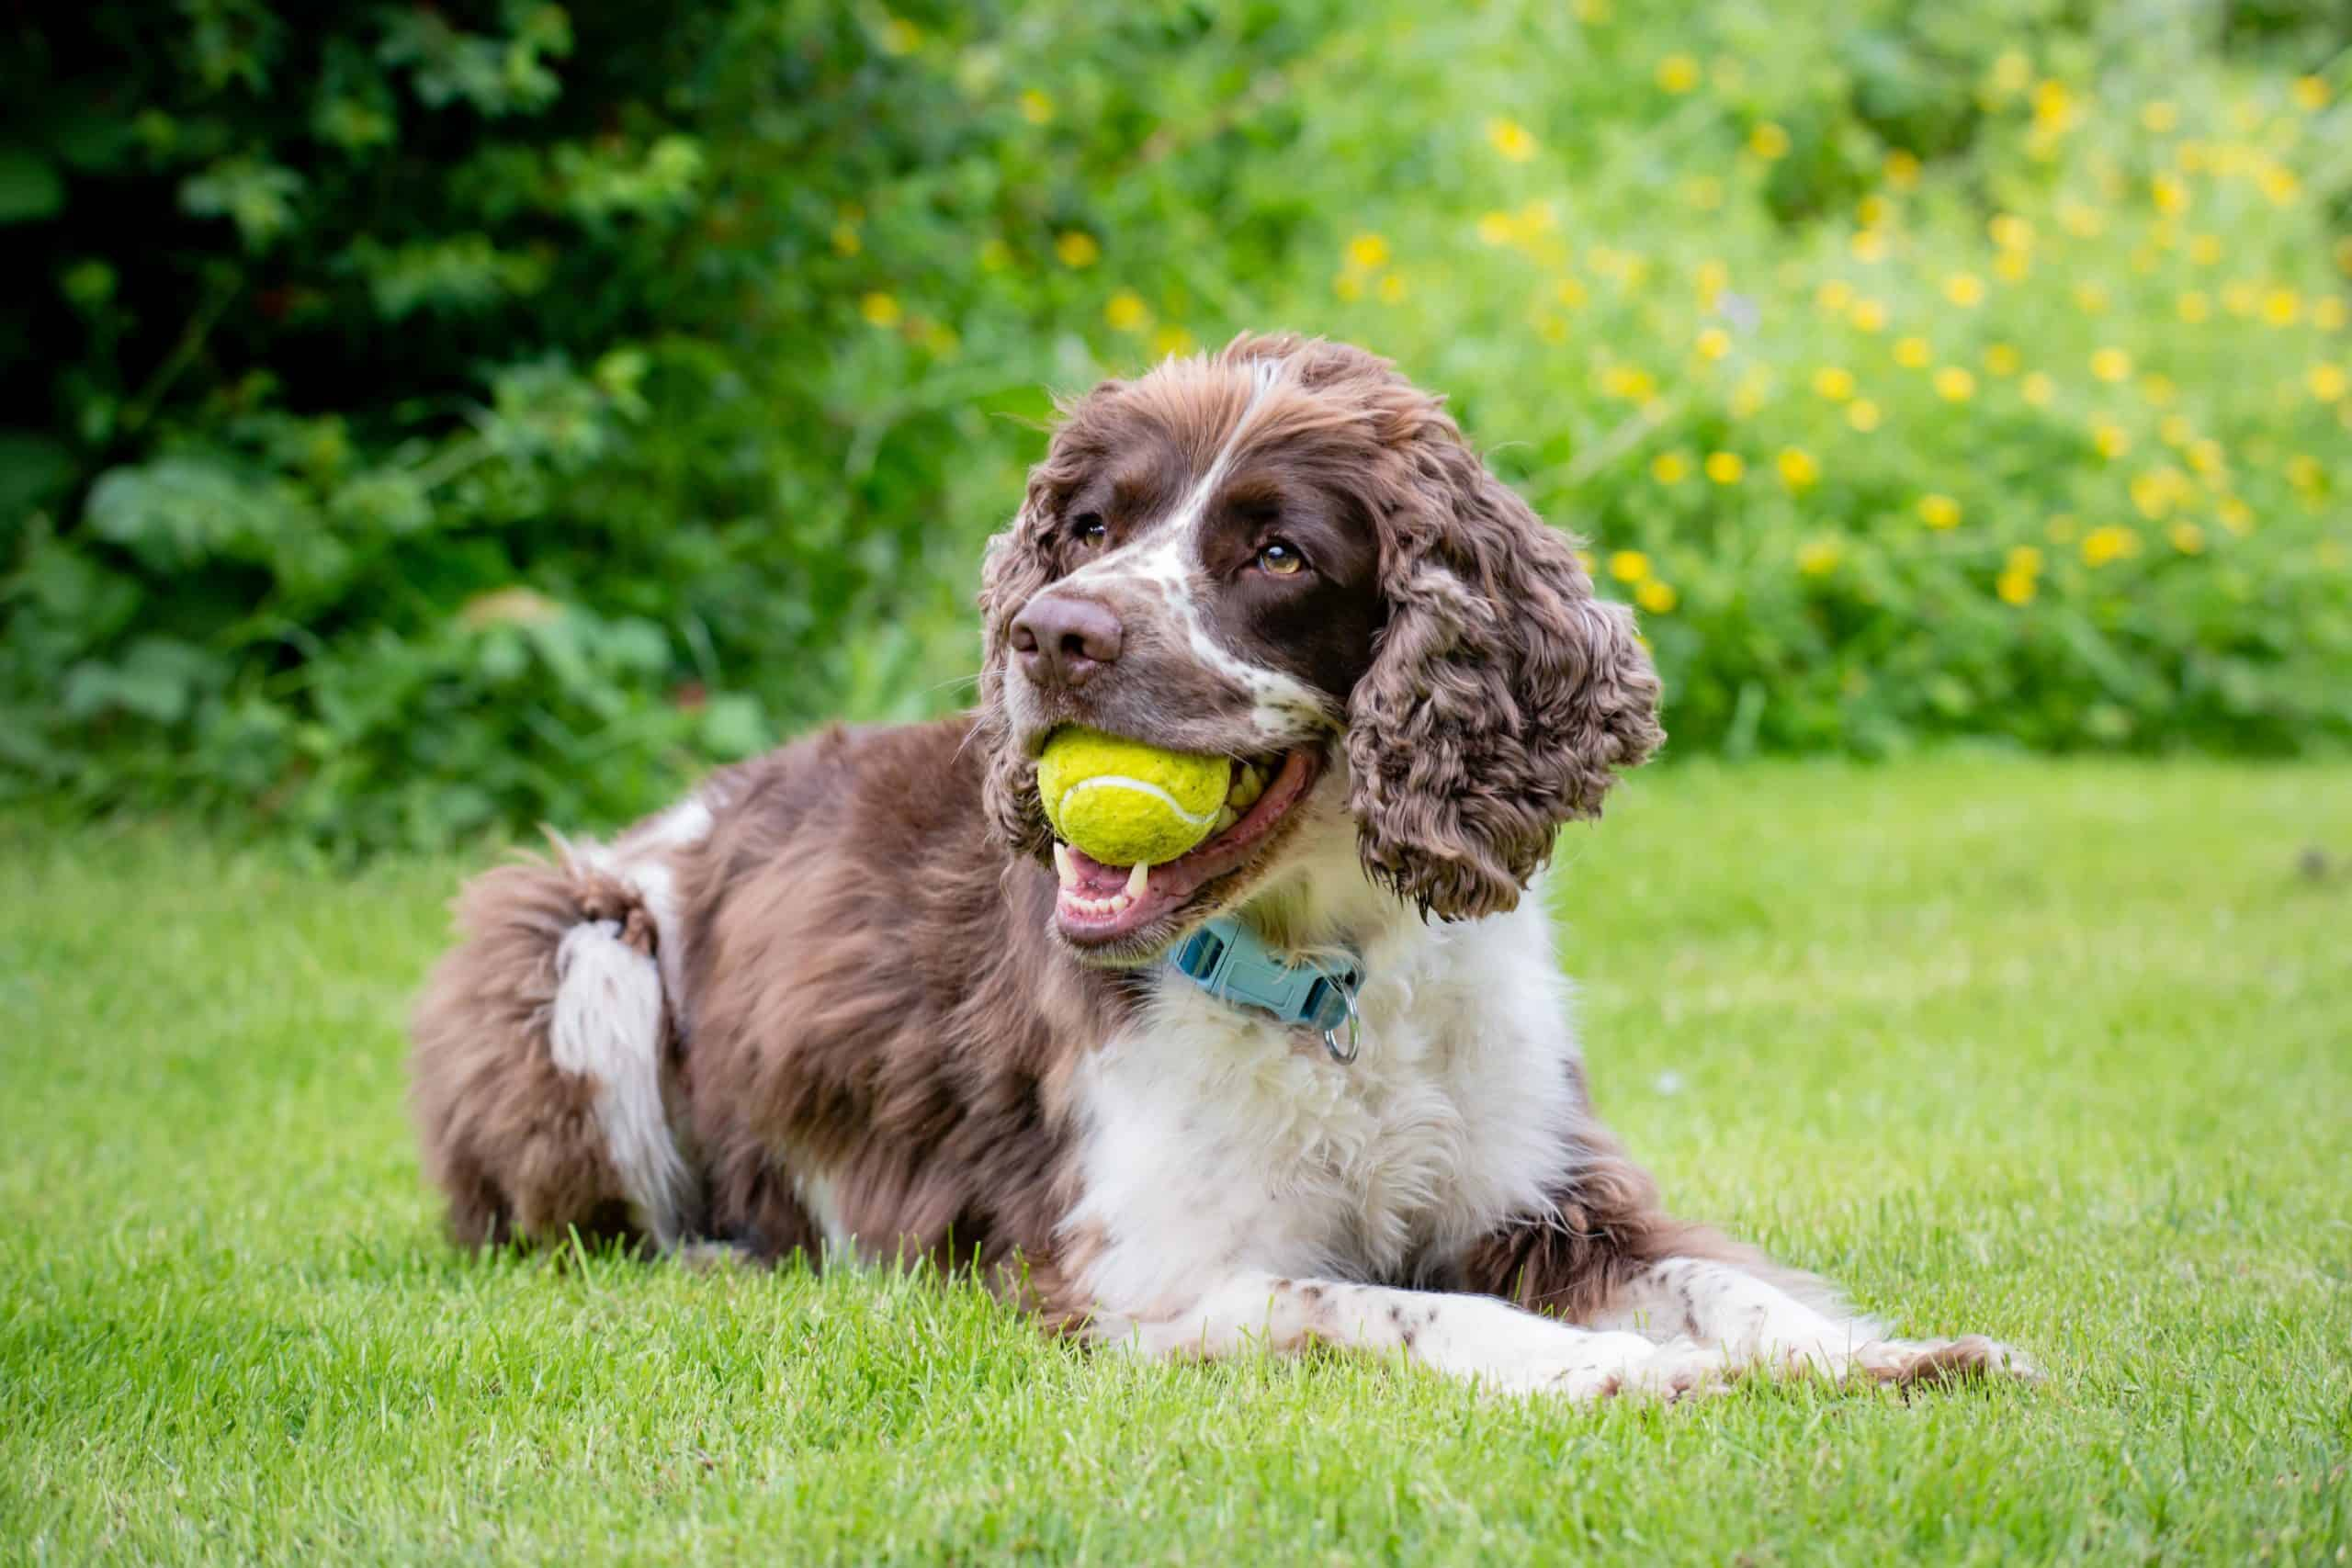 English springer spaniel holds tennis ball in its mouth. The English springer spaniel is an active dog breed that's every bit as athletic and energetic as their name would suggest.